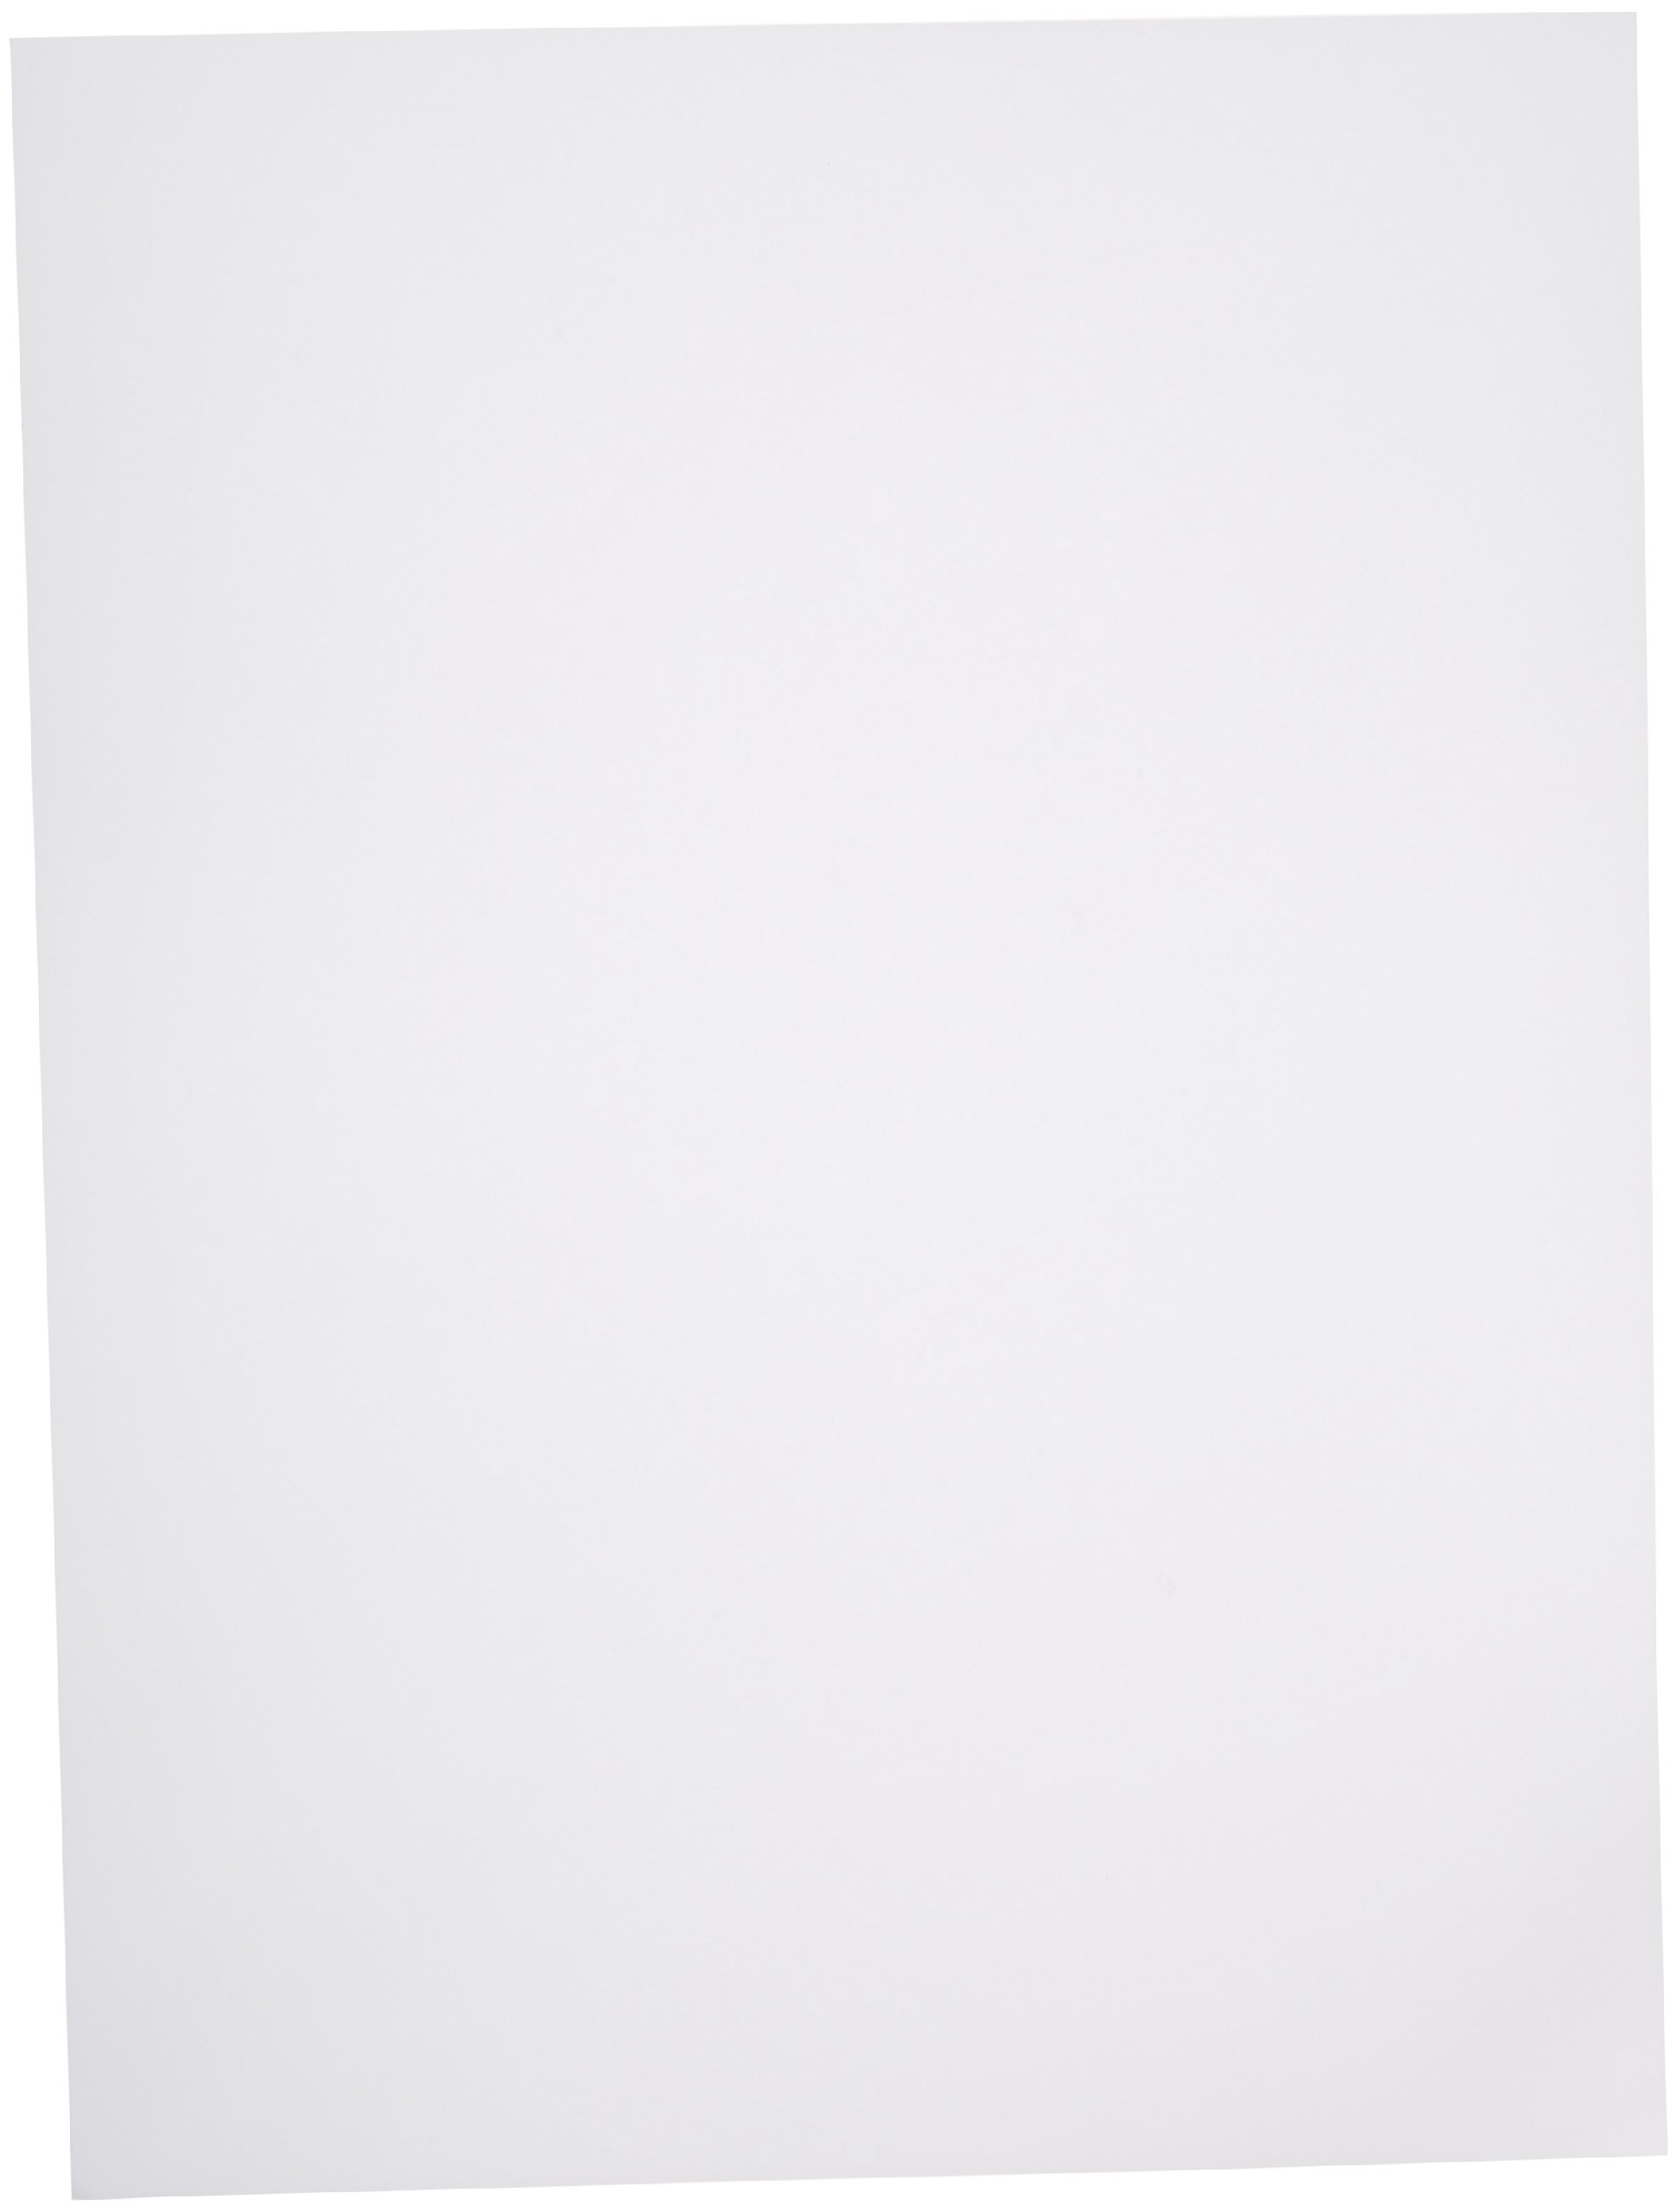 Sax Sulphite Drawing Paper, 50 lb, 18 x 24 Inches, Extra-White, Pack of 500